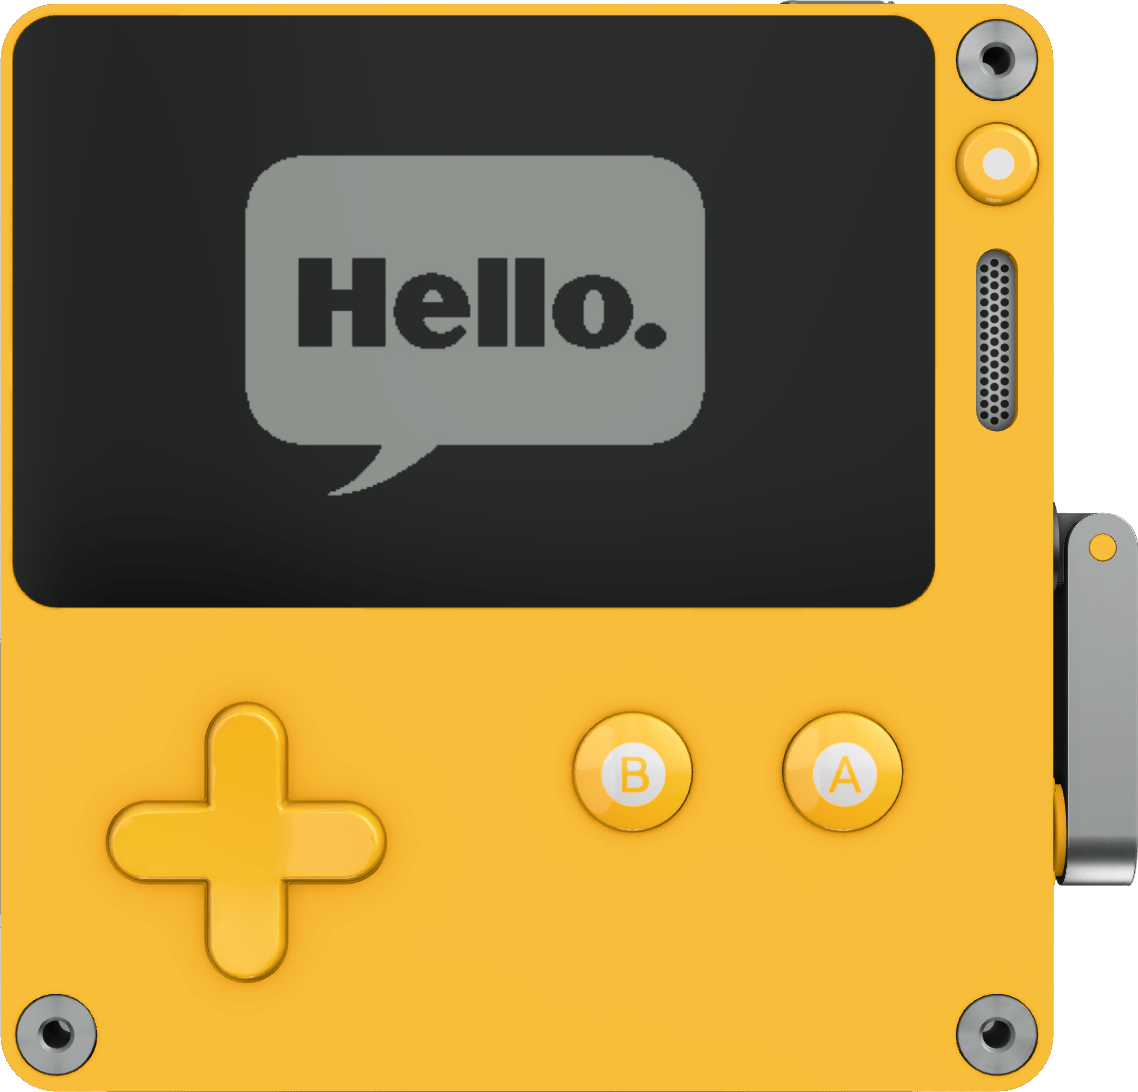 A Playdate device with the word 'Hello' displayed on its screen.